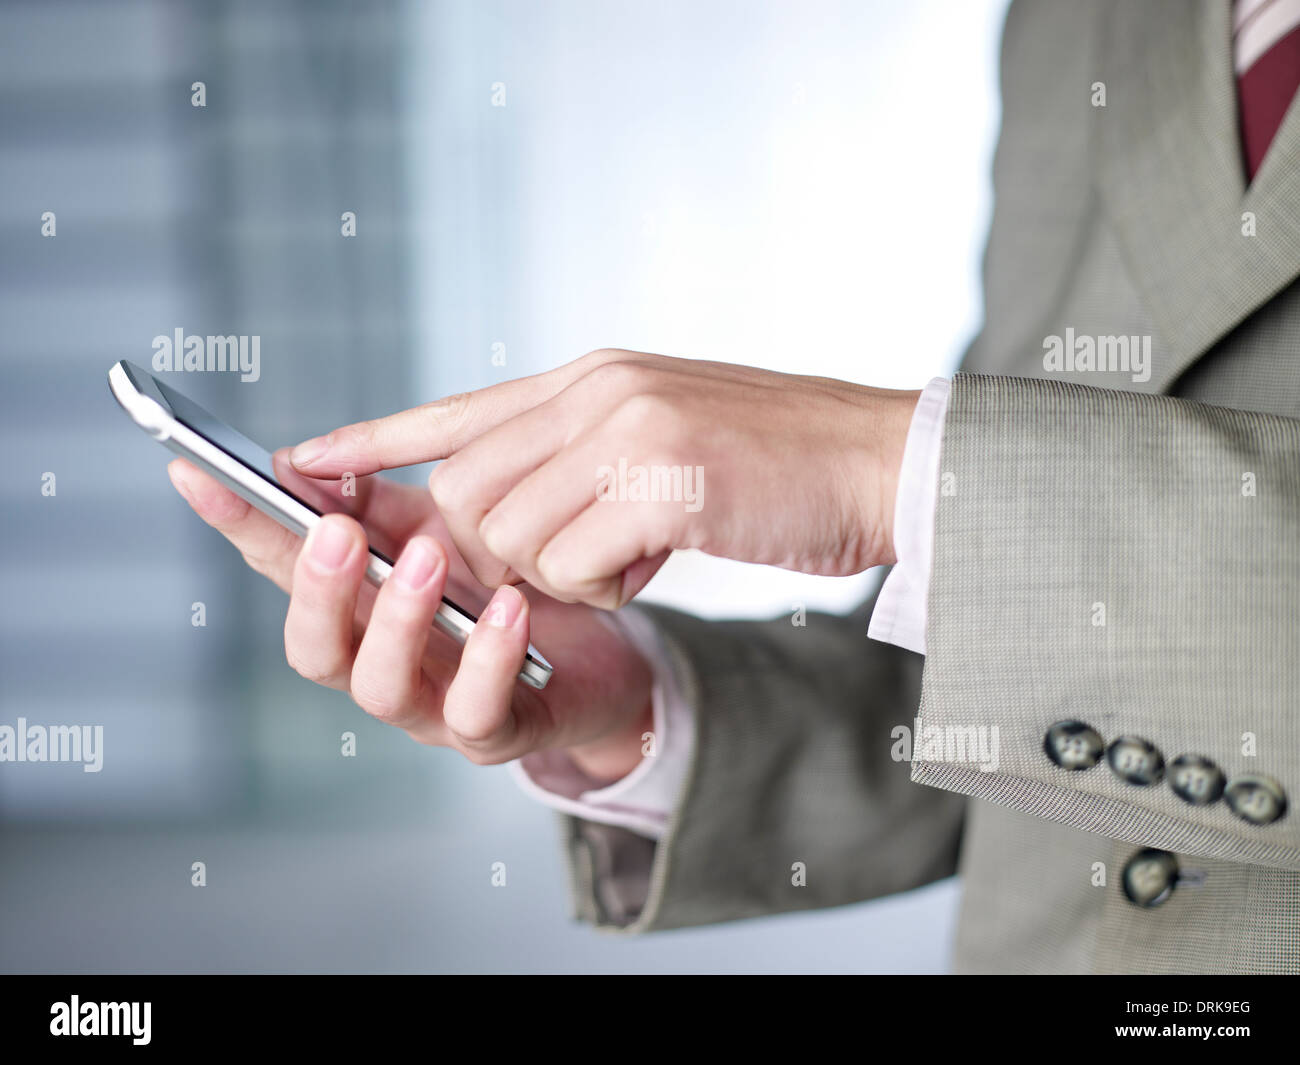 hand touching the screen of a smartphone. - Stock Image